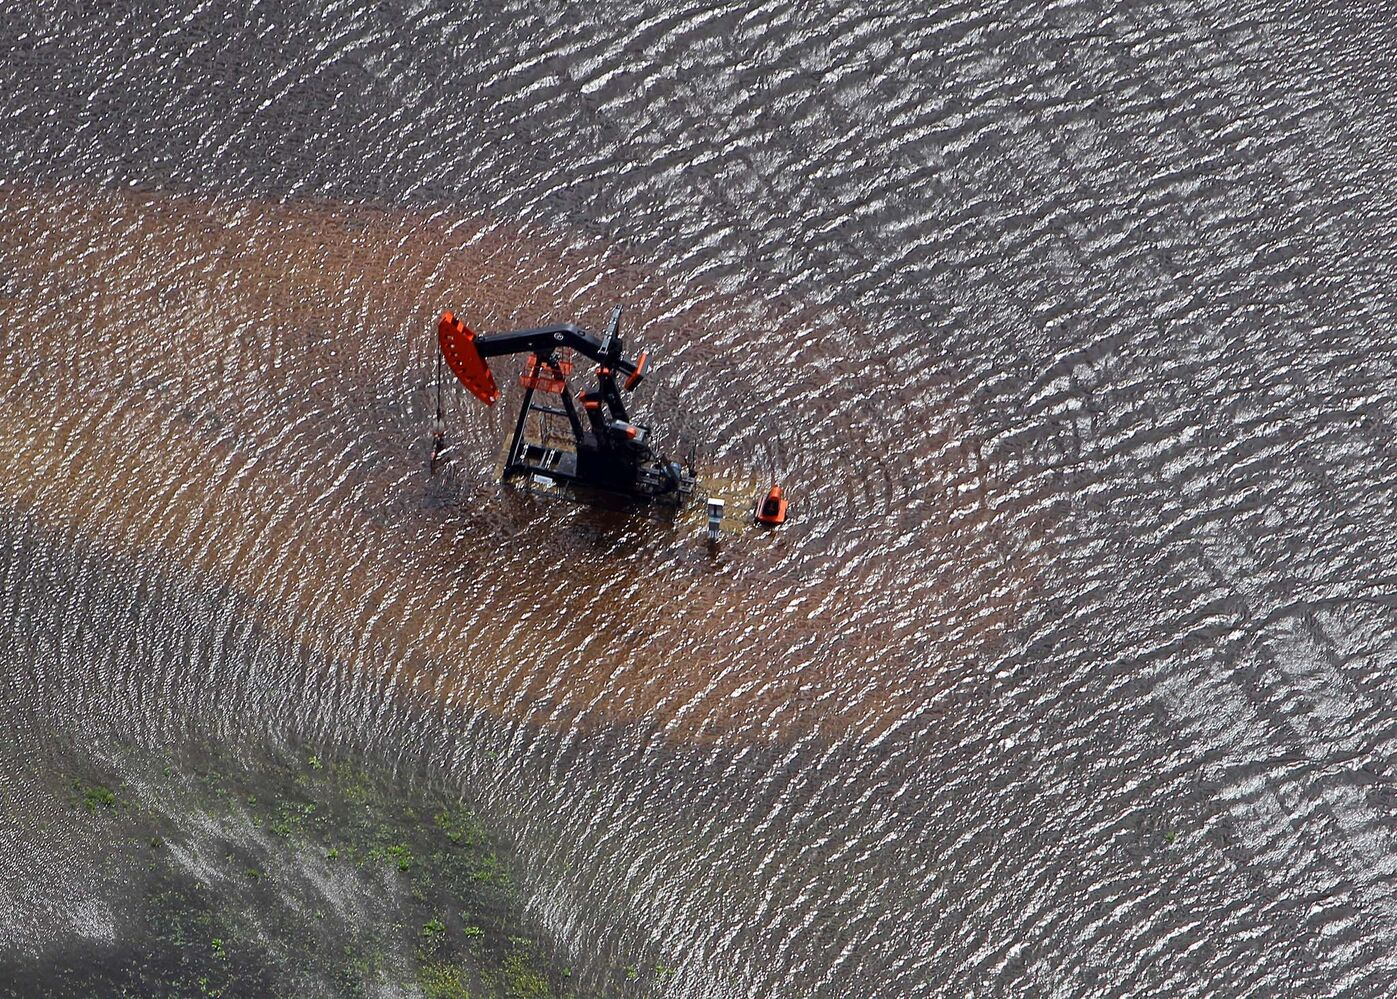 Oil and water mix as floodwaters overrun fields near Cromer, Manitoba on Monday afternoon. (Colin Corneau / Brandon Sun)